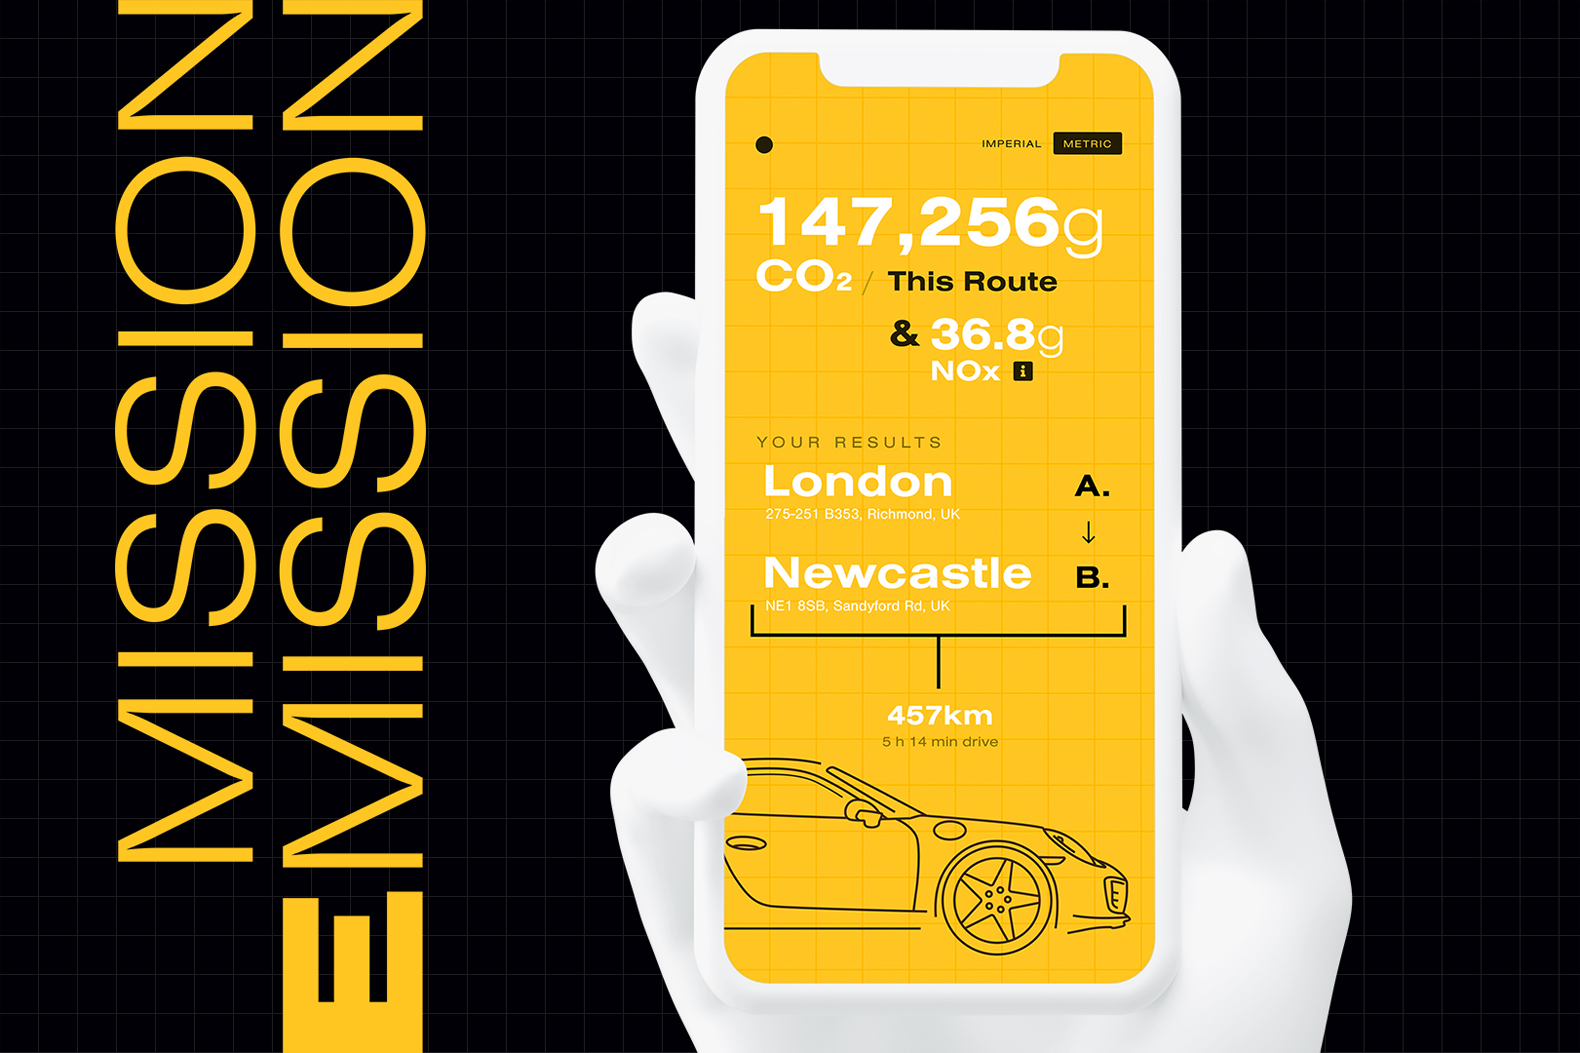 This calculator tracks the carbon emissions of your travels